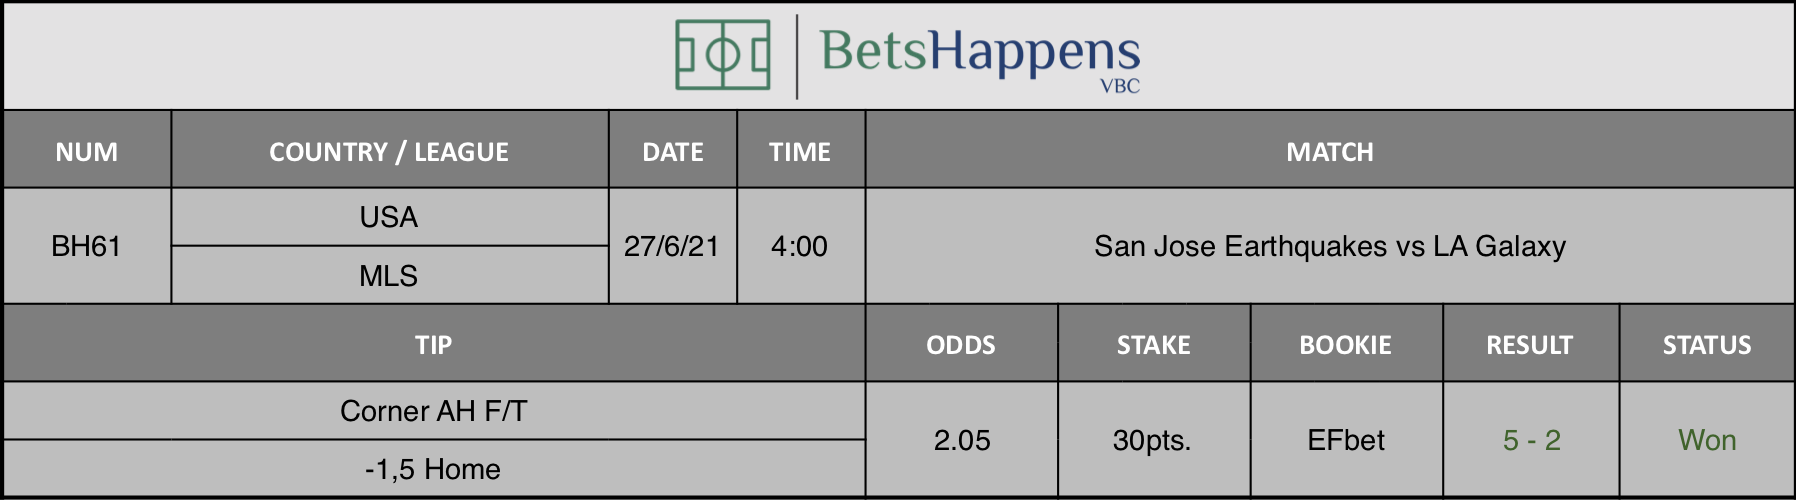 Results of our tip for the San Jose Earthquakes vs LA Galaxy match Corner AH F/T -1,5 Home is recommended.